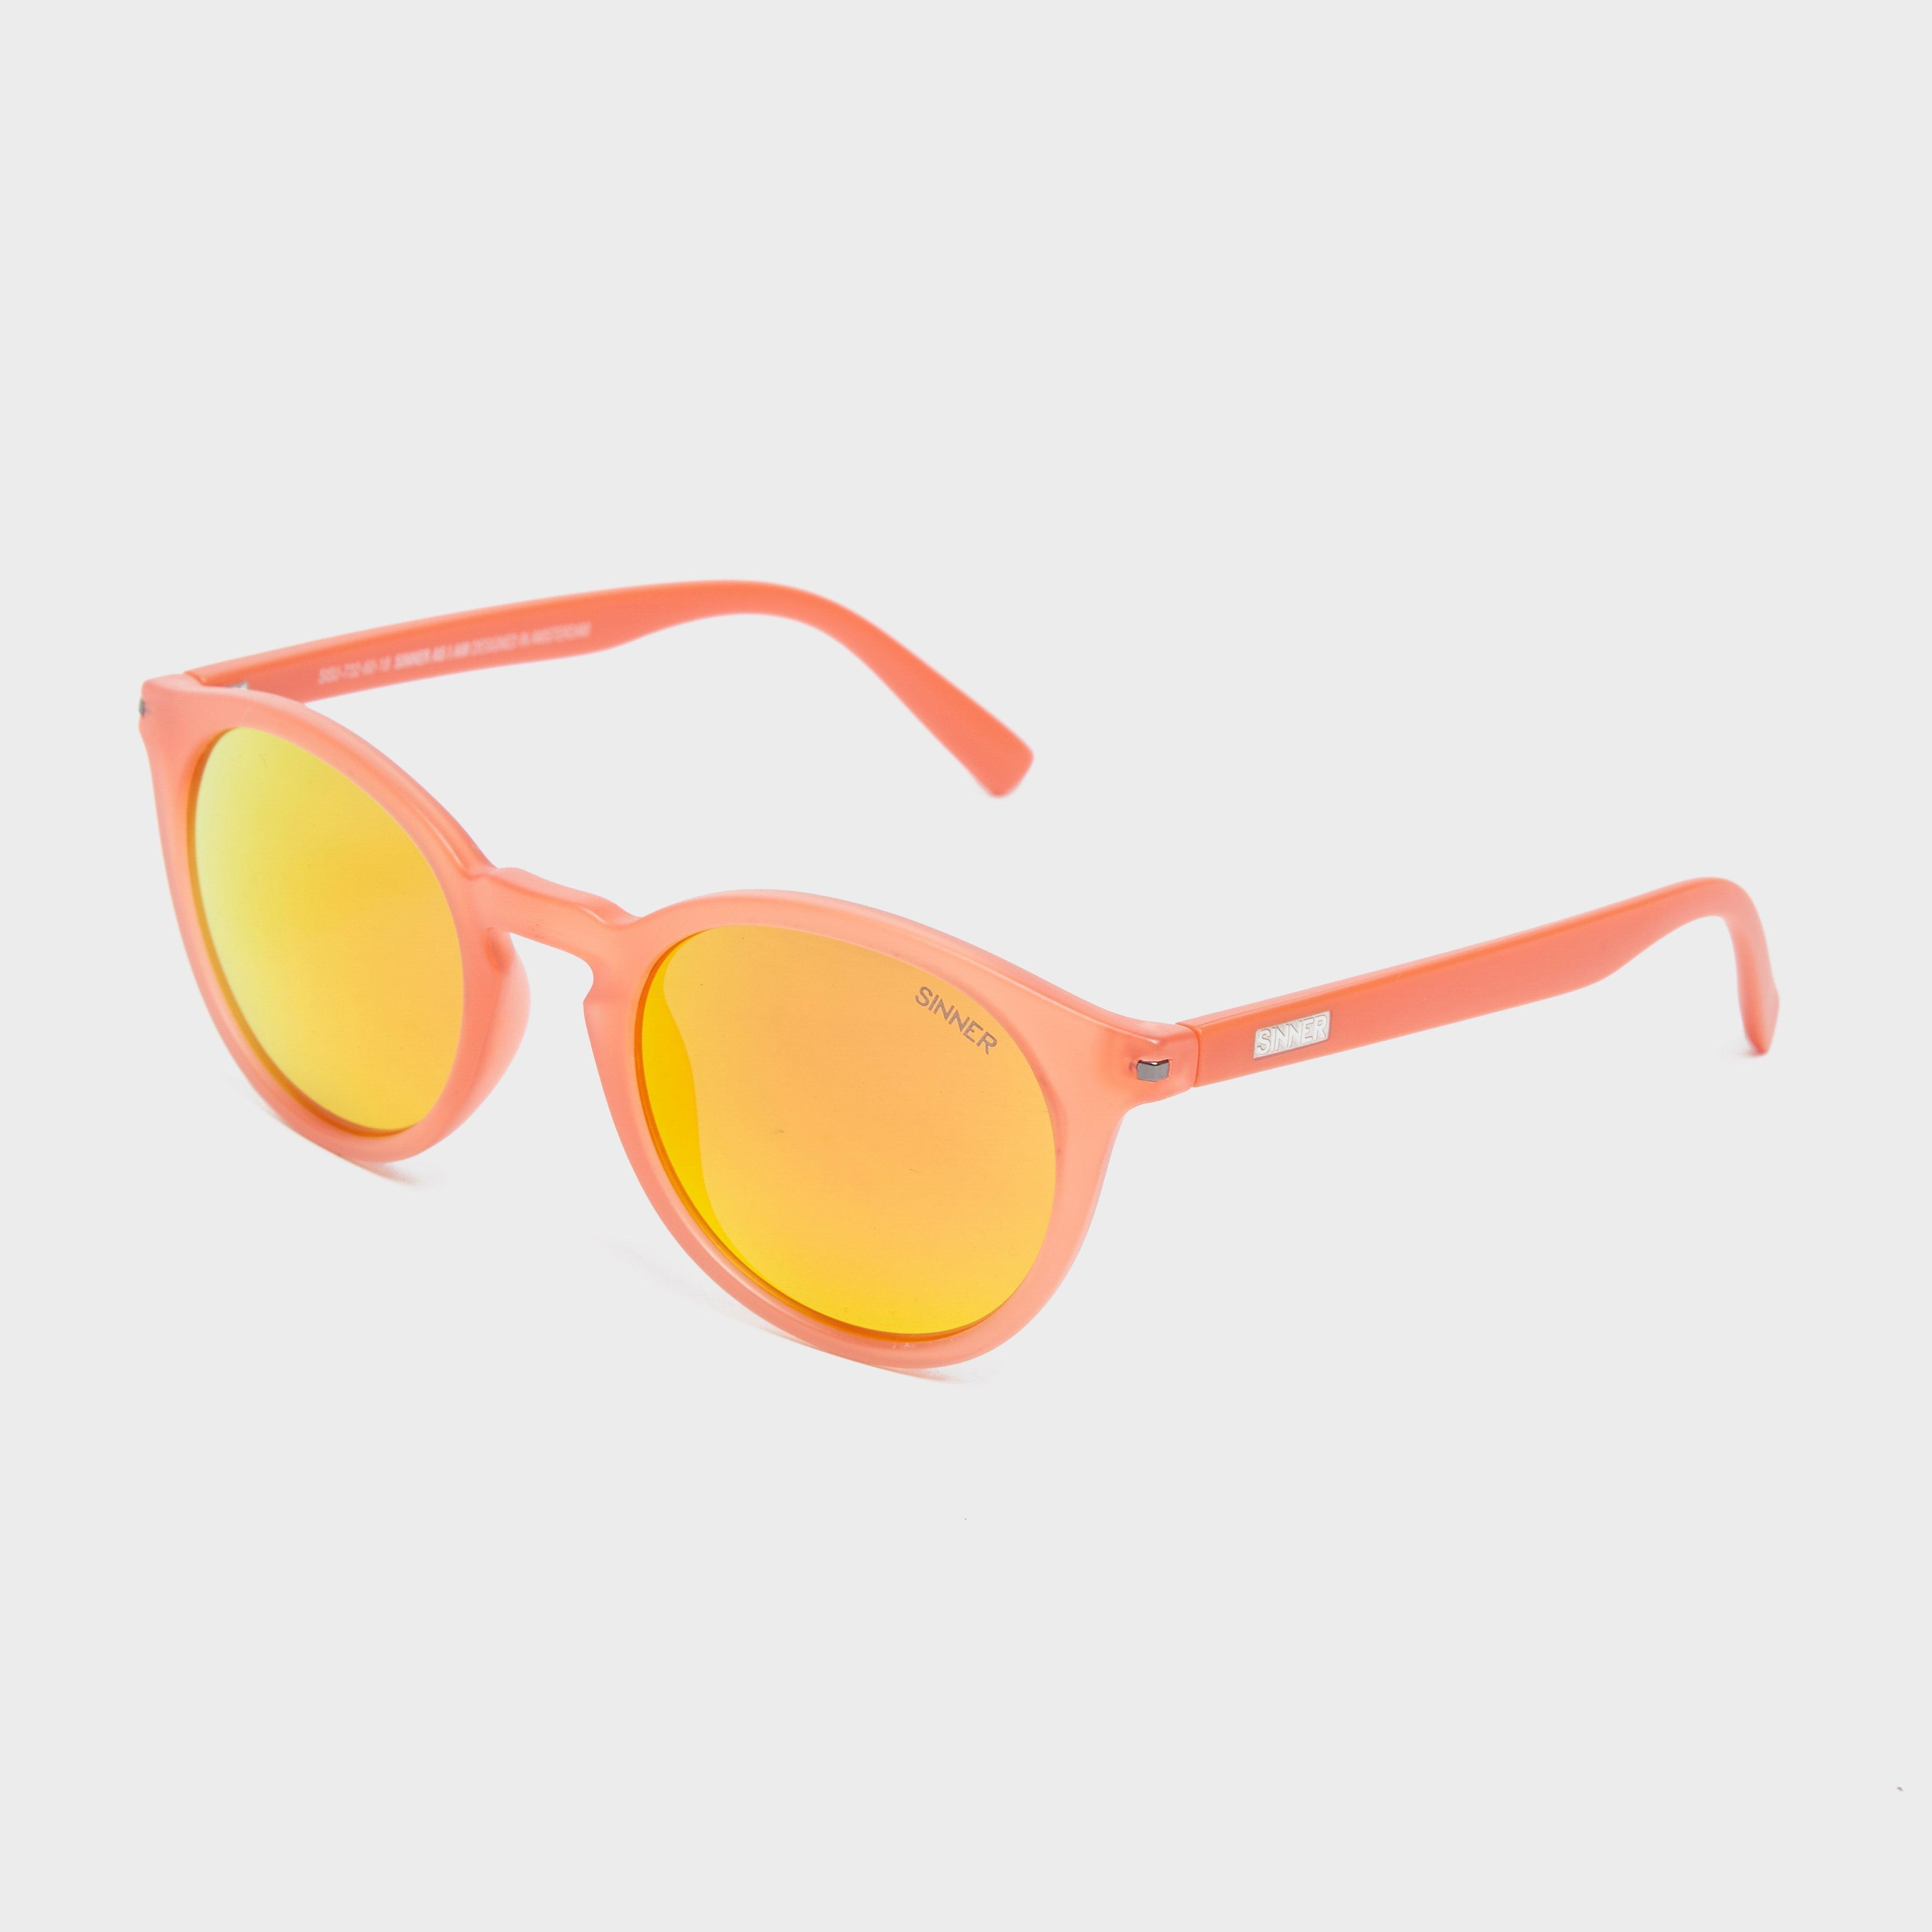 Sinner Sinner Perfect for preventing glare in bright conditions on the mountain, in water and even in deserts, these category 3 shades deliver total protection and give you crisp and clear vision so you can make the most of your day outdoors. - Orange, Orange